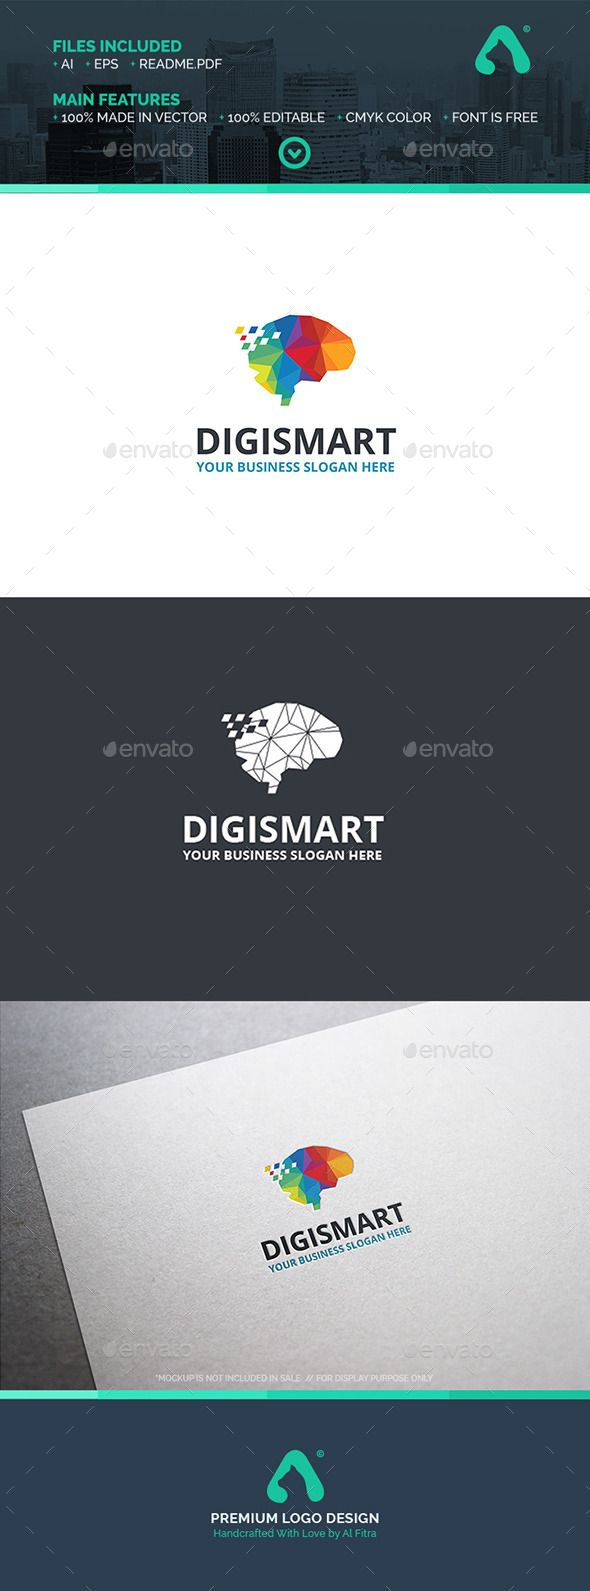 Digi Smart Logo Template — Vector EPS #logo #company • Available here → https://graphicriver.net/item/digi-smart-logo-template/11939477?ref=pxcr